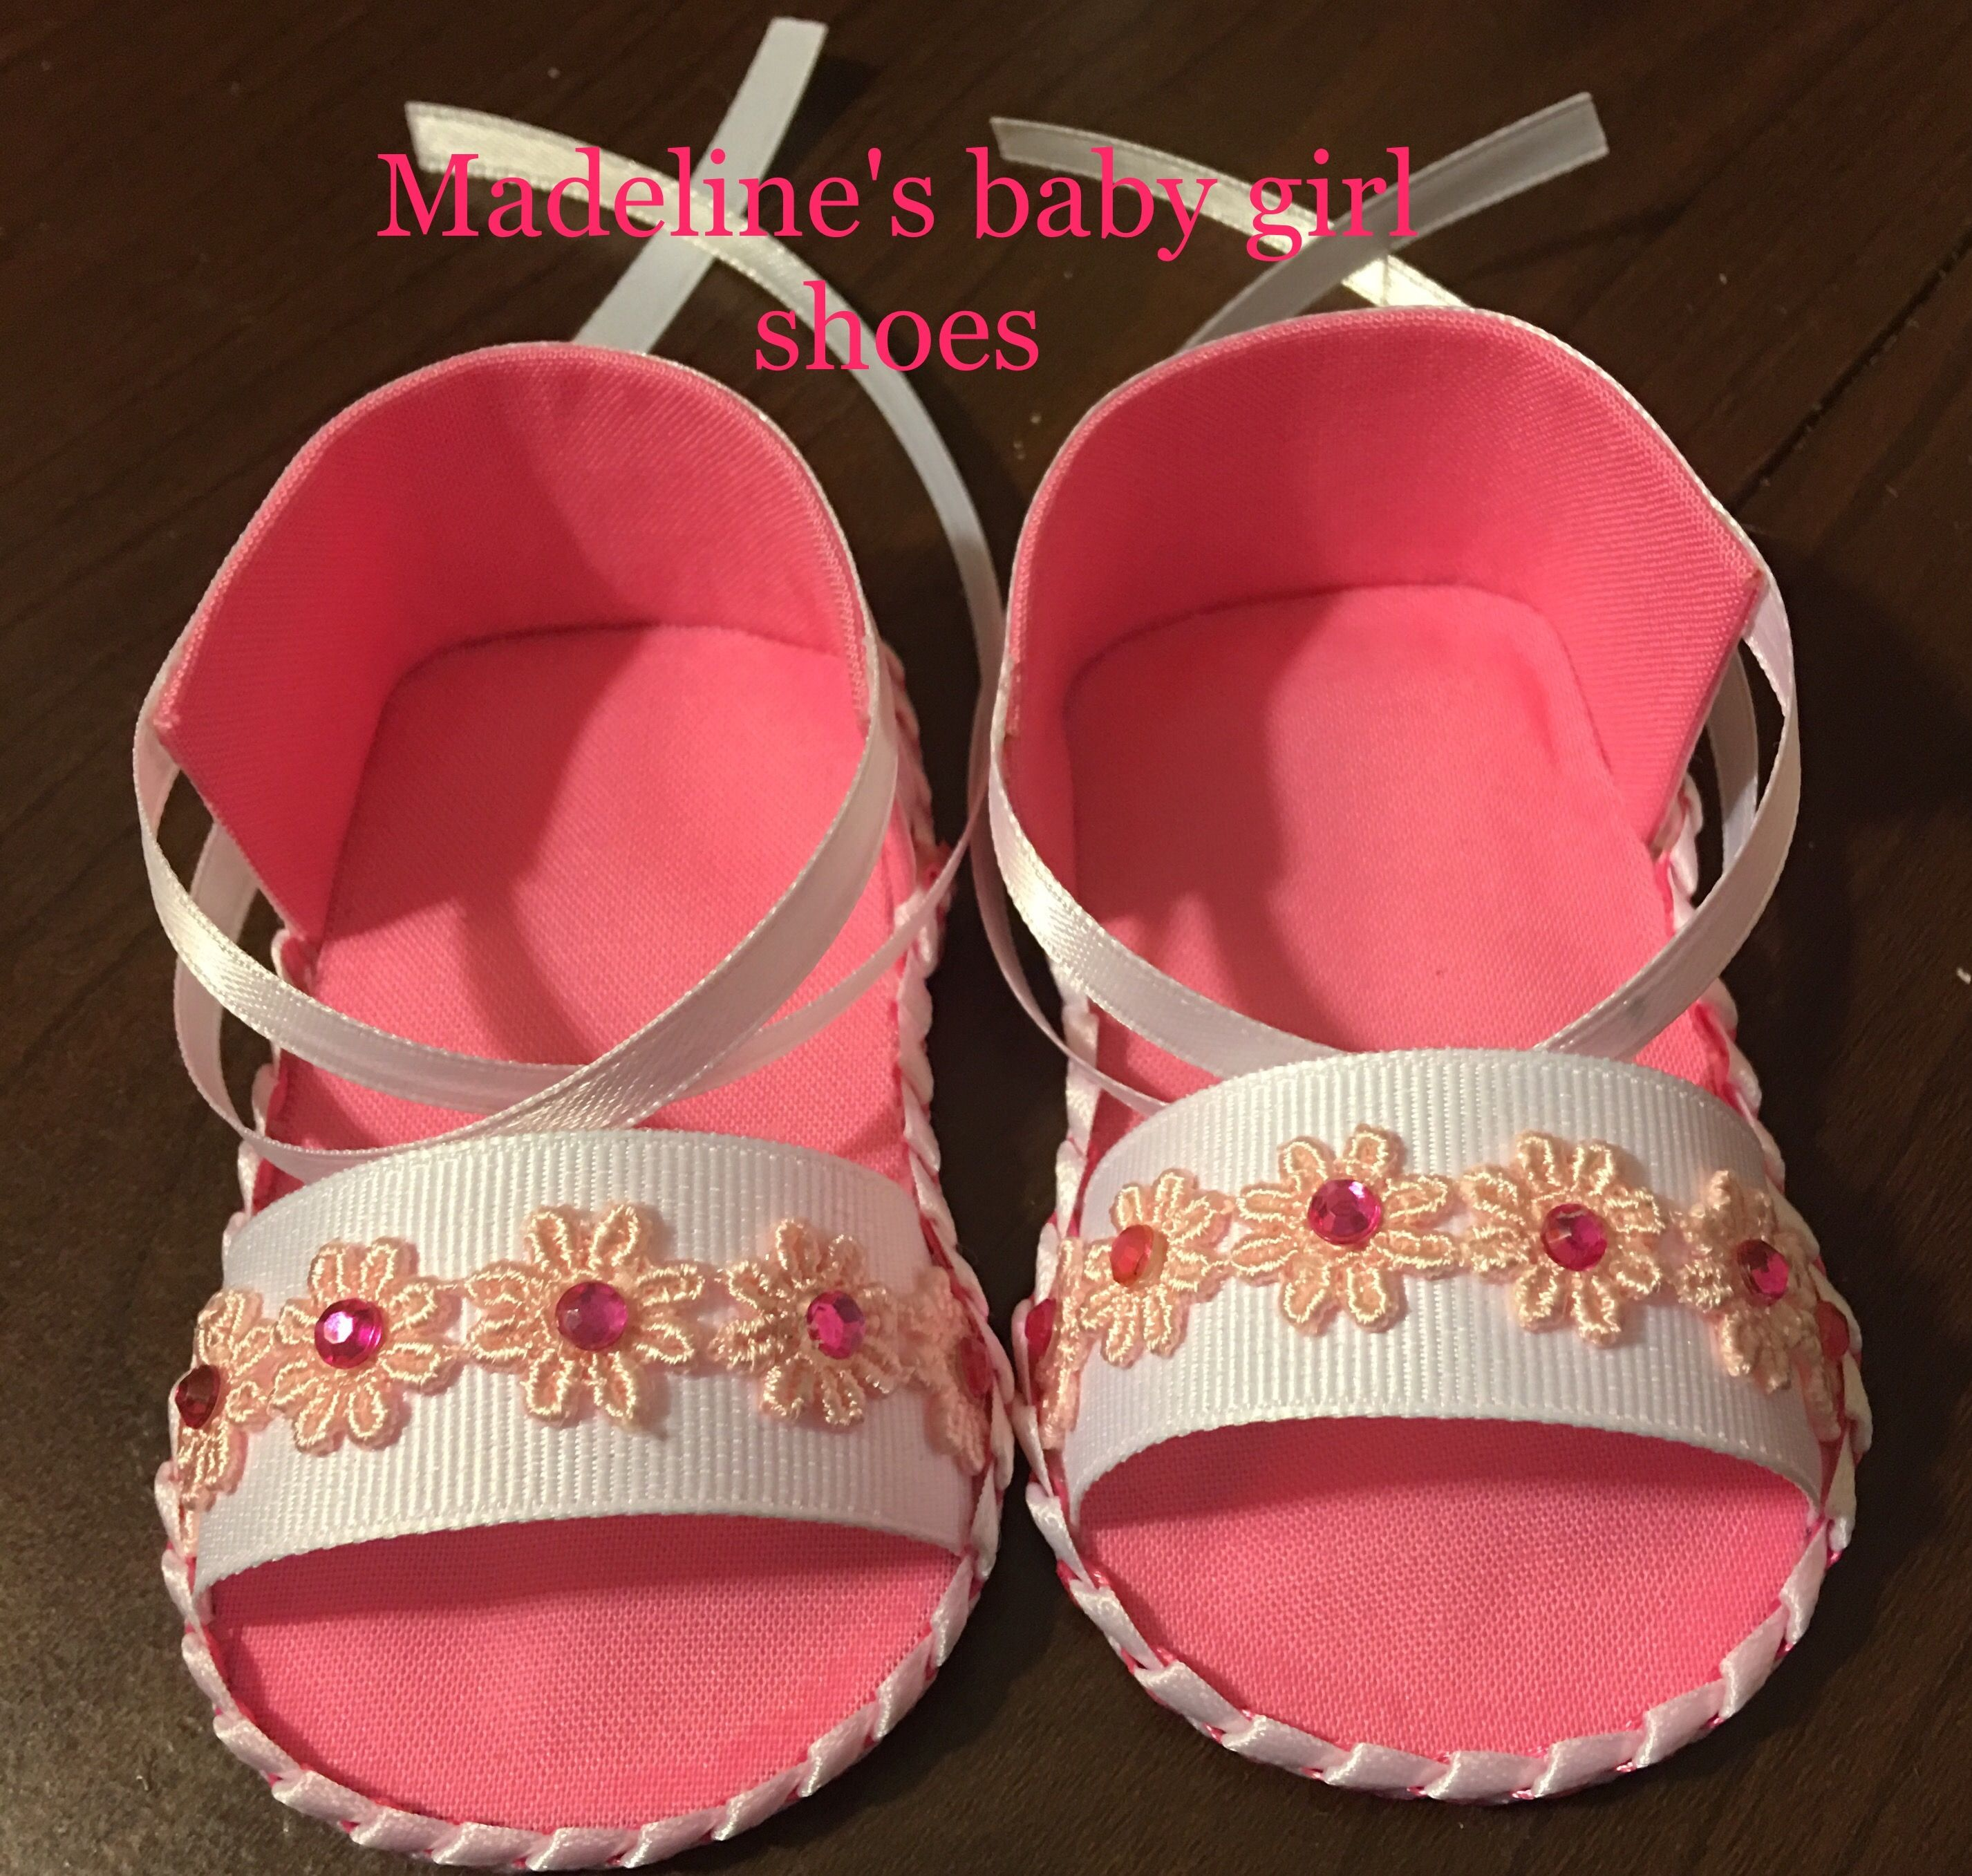 Handmade baby shoes size 3 6 months $15